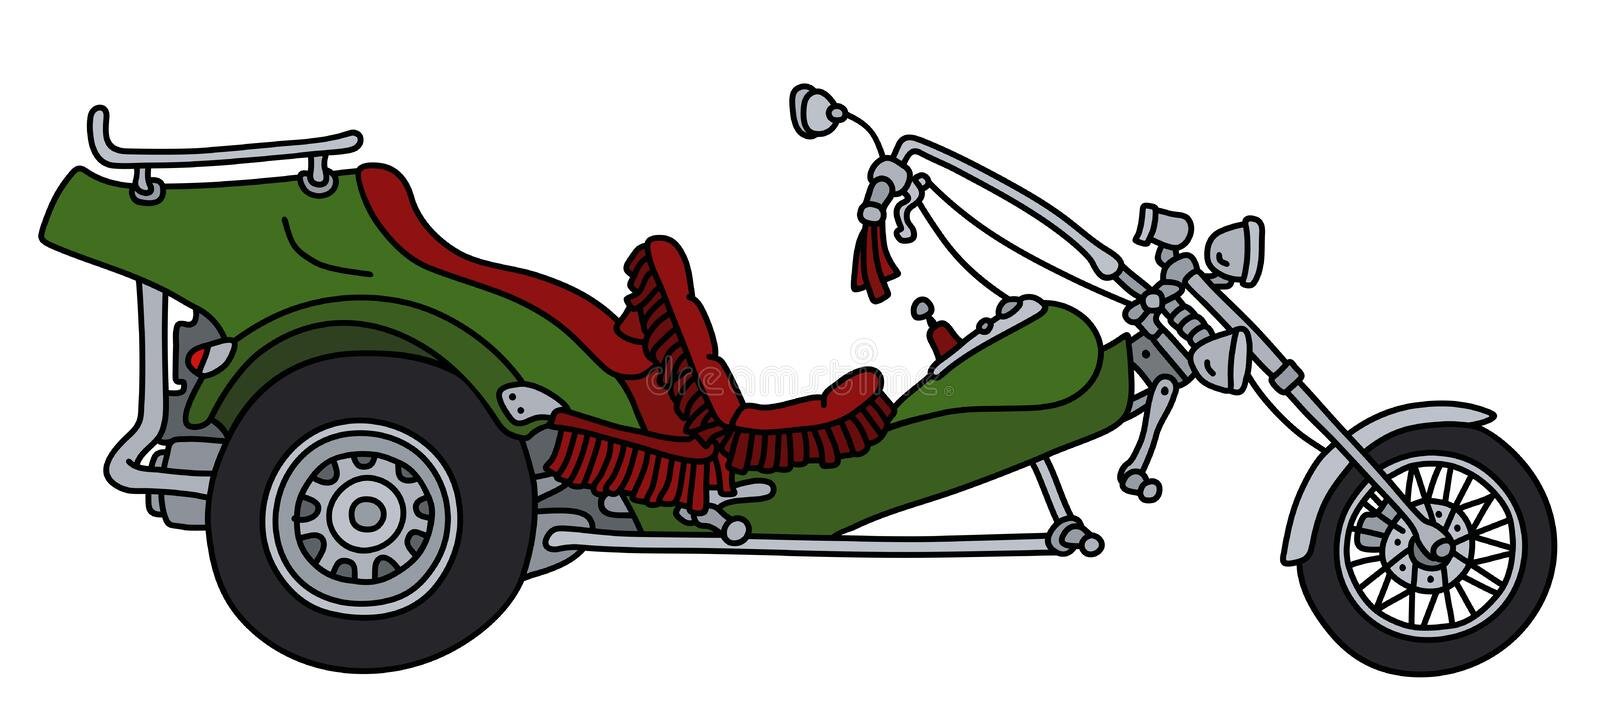 The green heavy motor tricycle. The hand drawing of a green heavy motor tricycle royalty free illustration